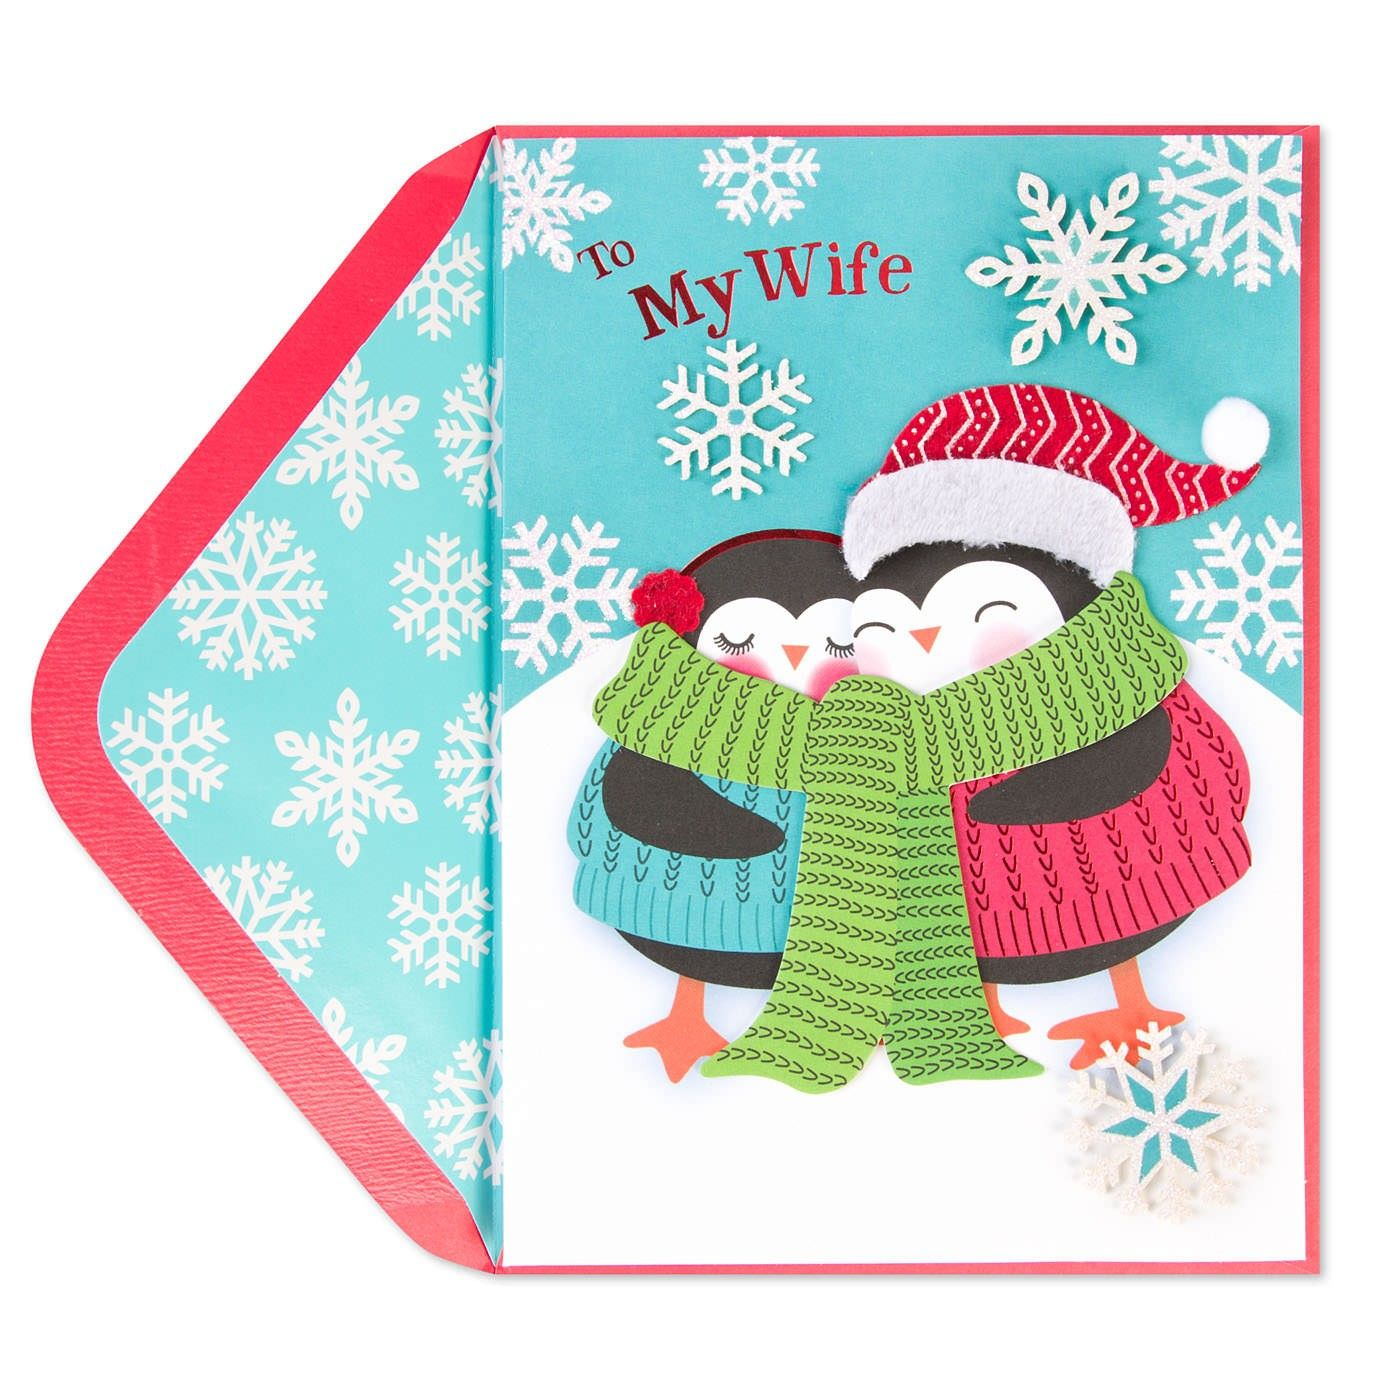 Snuggling Penguins Christmas Card (For Wife) | Papyrus Art Direction ...